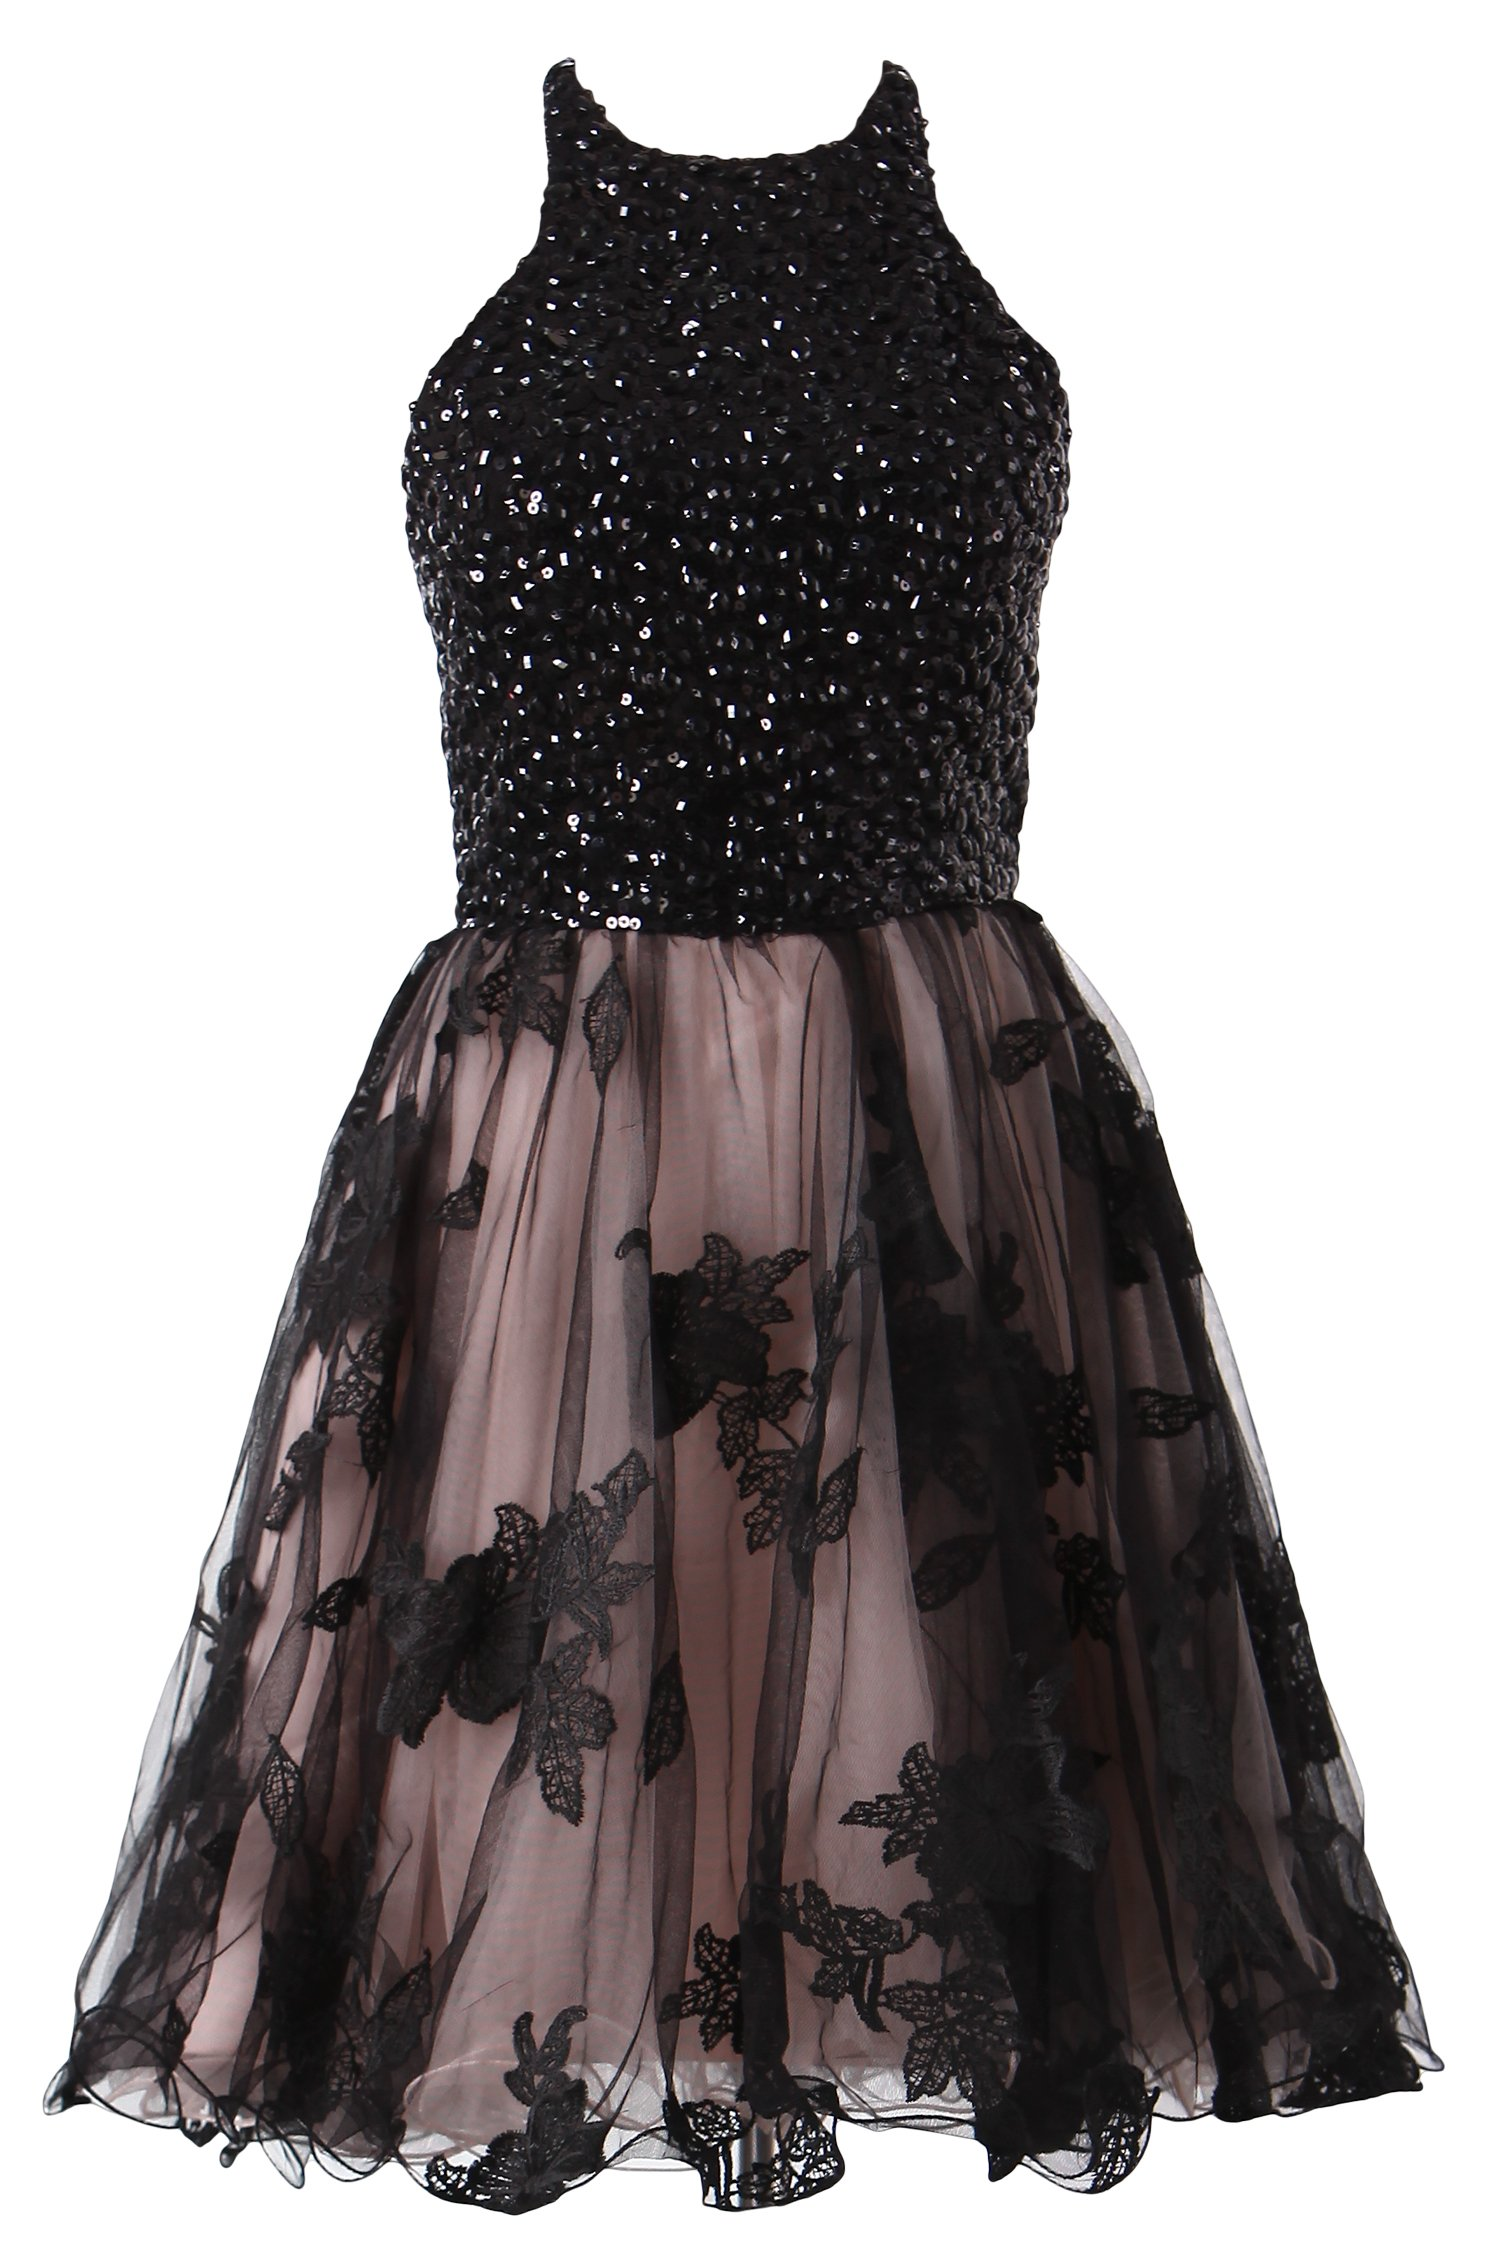 Tdress Girl's Scoop A Line Beaded Homecoming Dresses Size 8 by Tdress (Image #6)